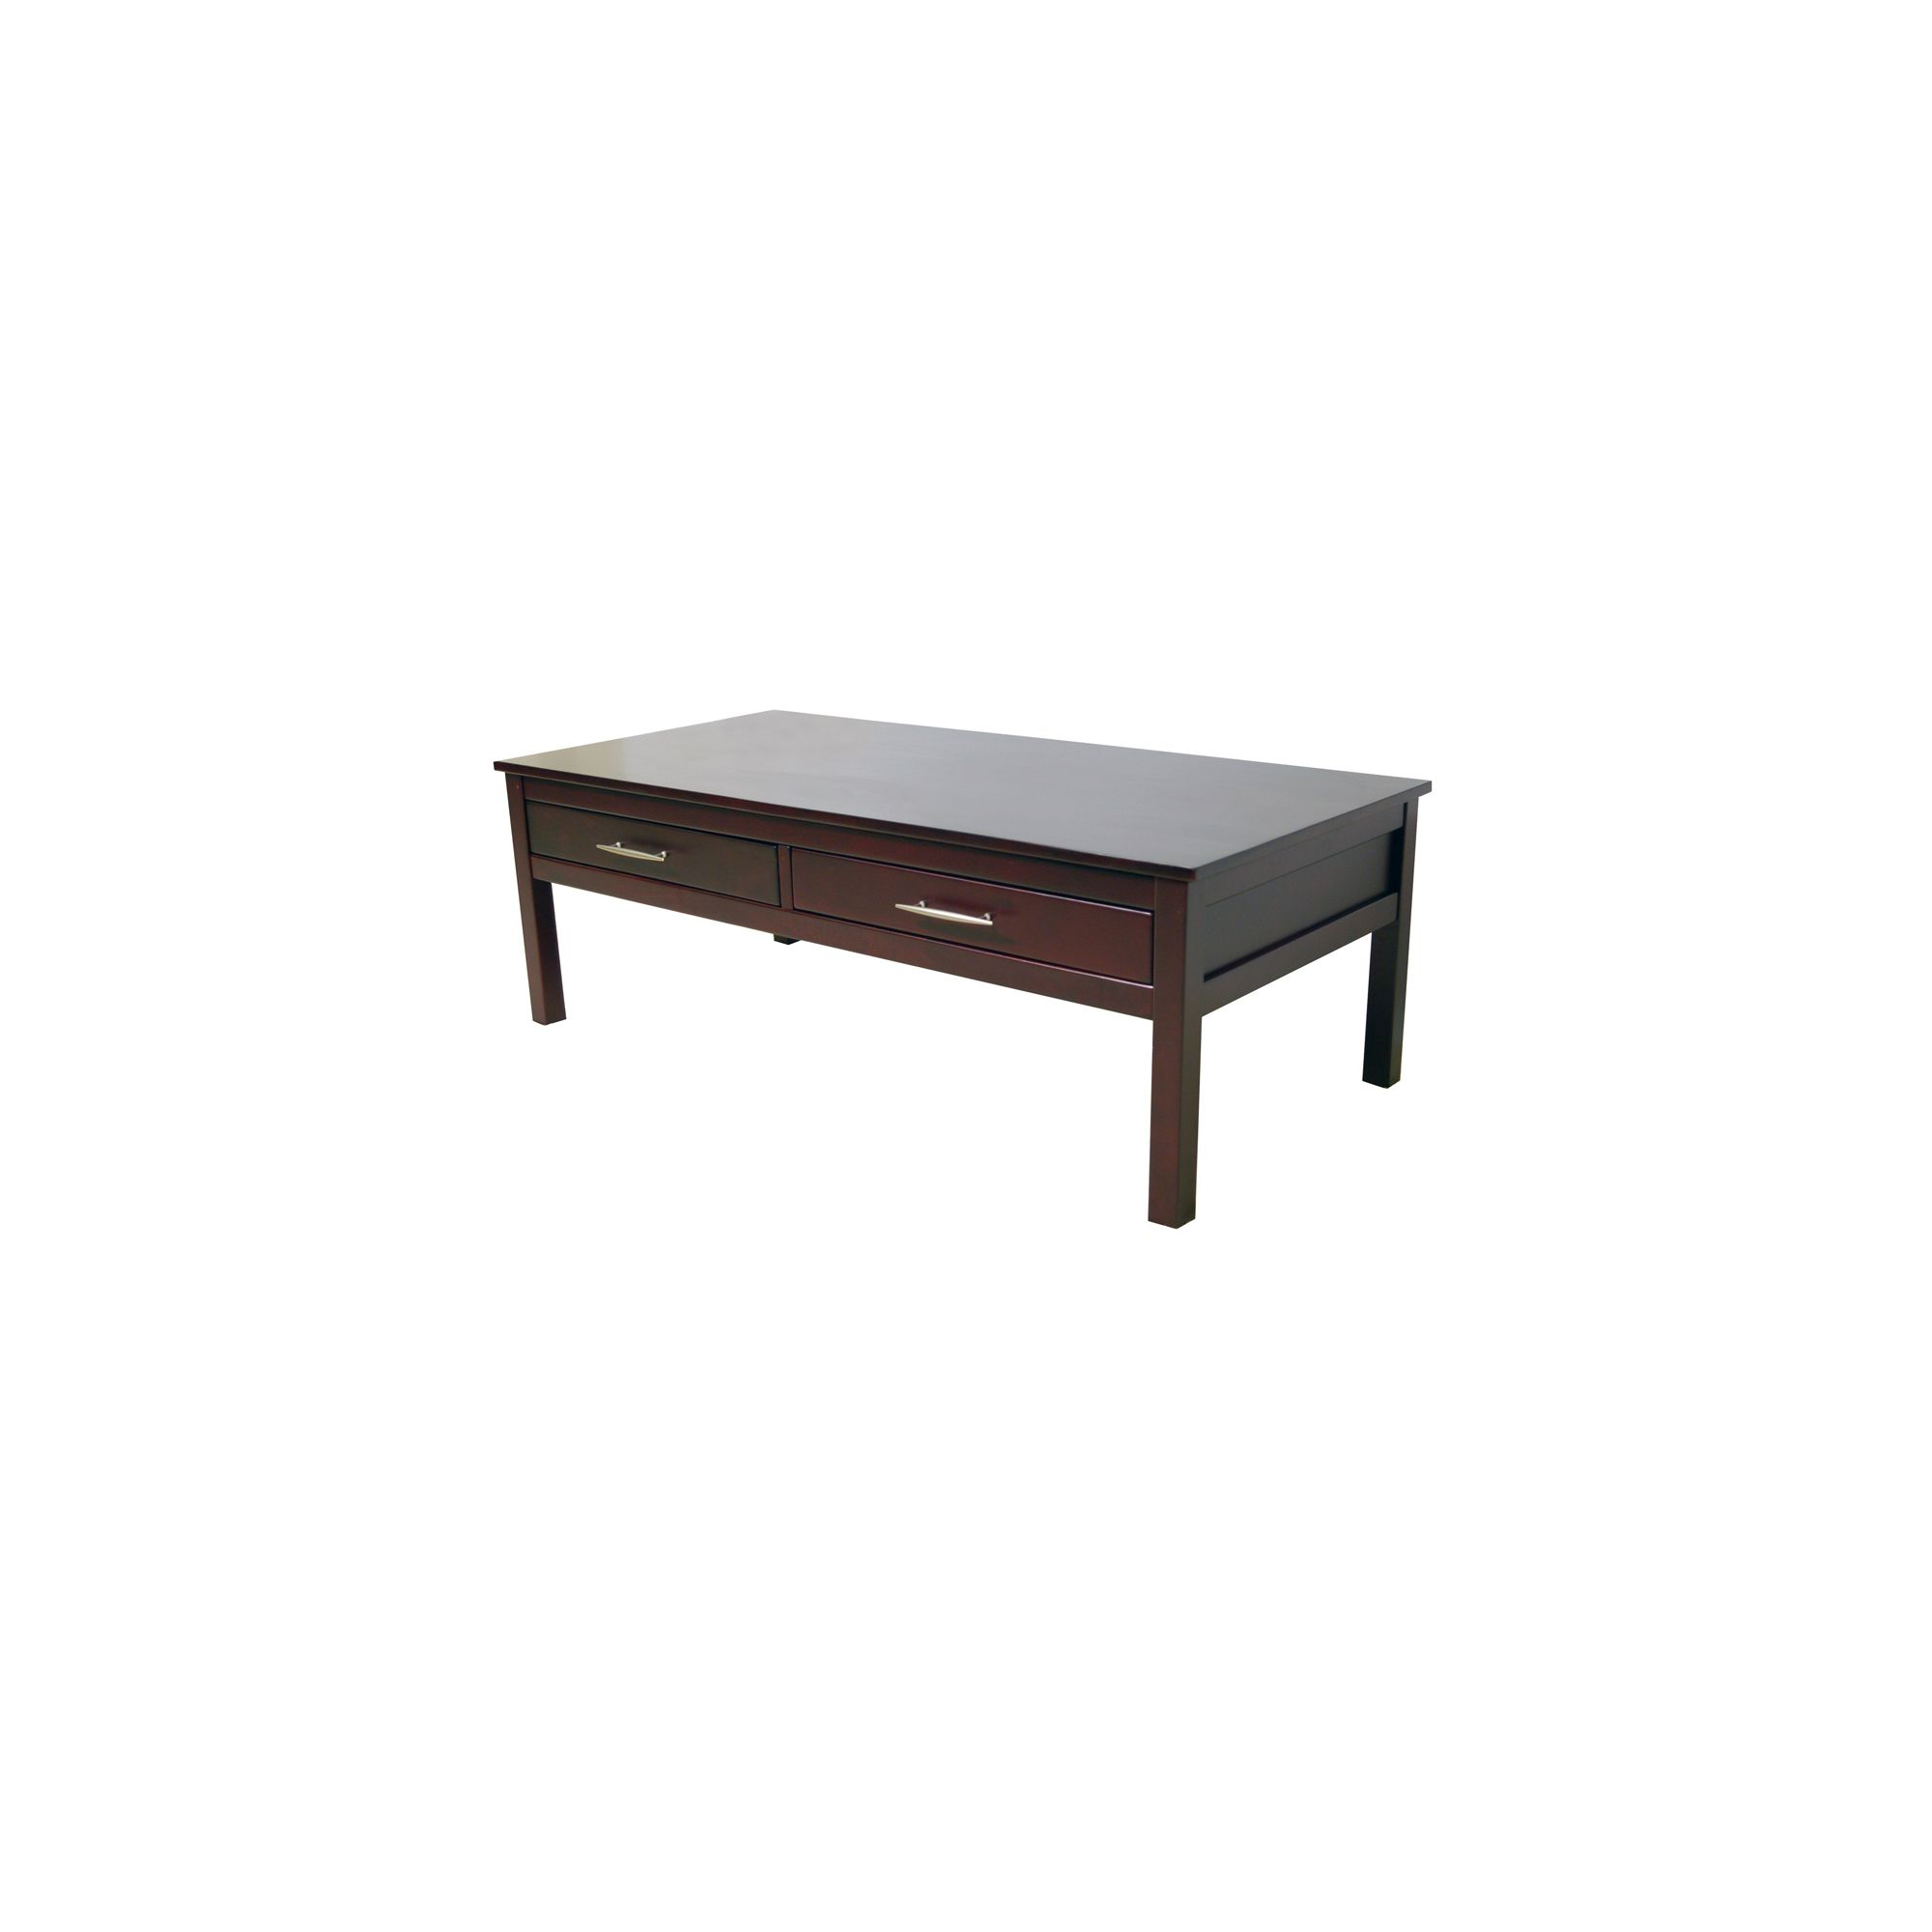 Marble Coffee Table Tesco: Techstyle Solid Wood Storage Coffee Table